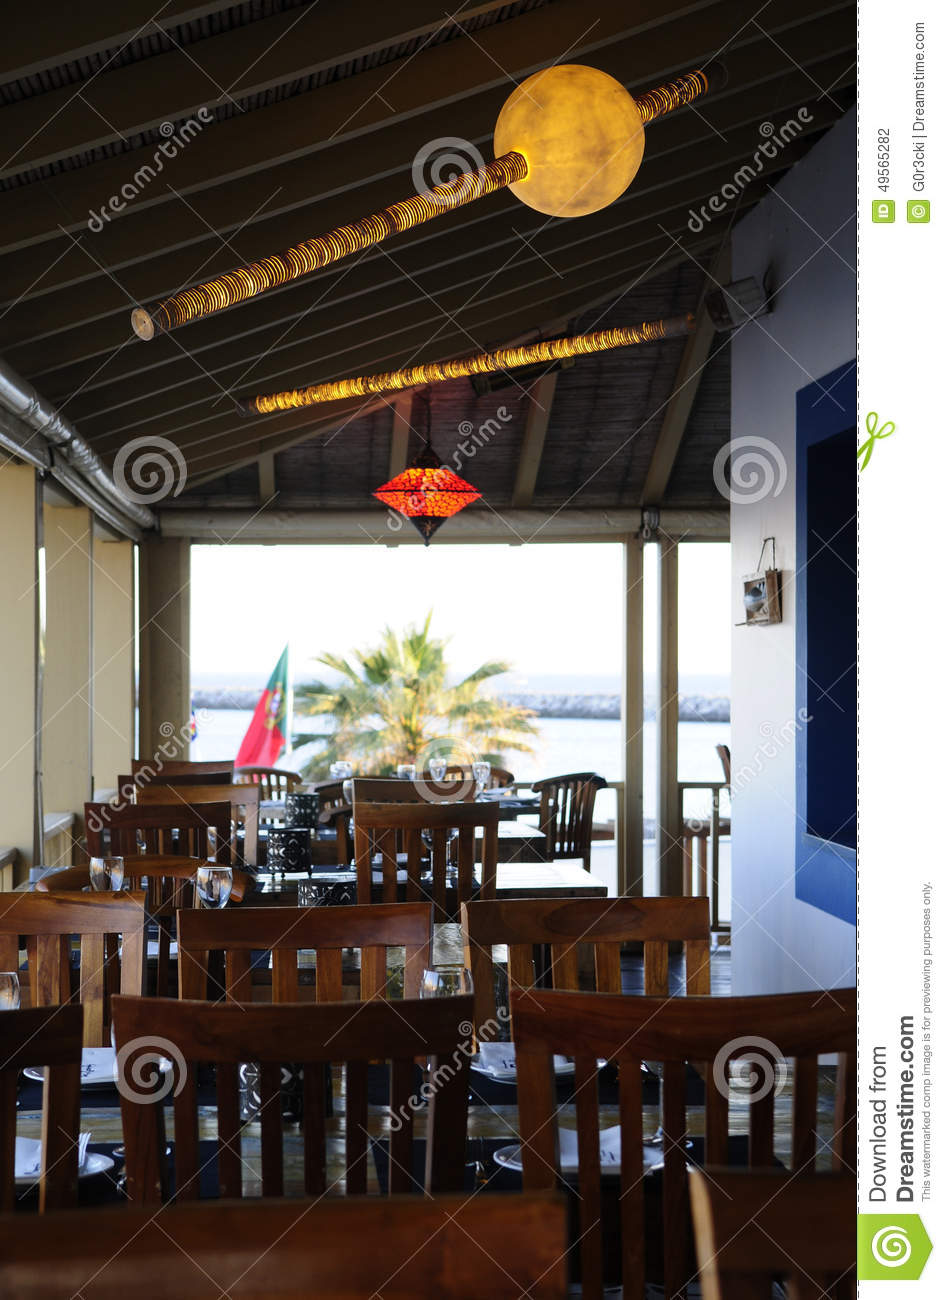 Restaurant terrace with wooden tables and chairs stock for Restaurant with terrace